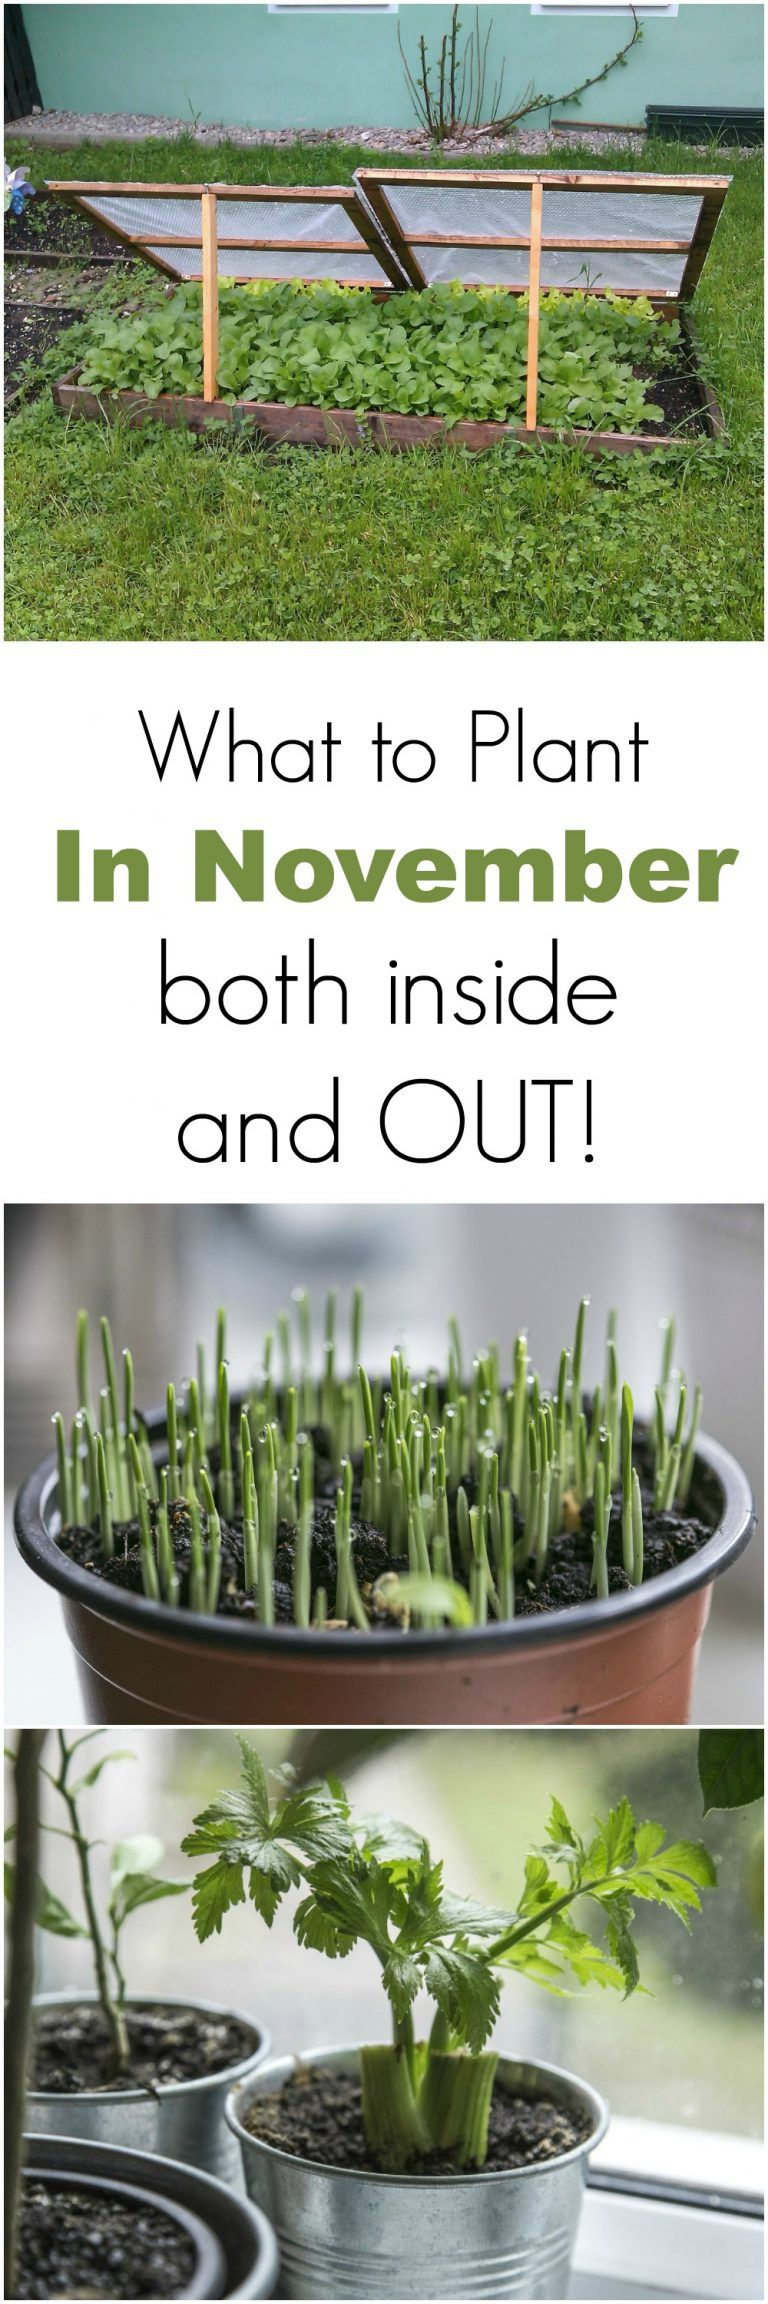 what to plant in november both inside and outside november